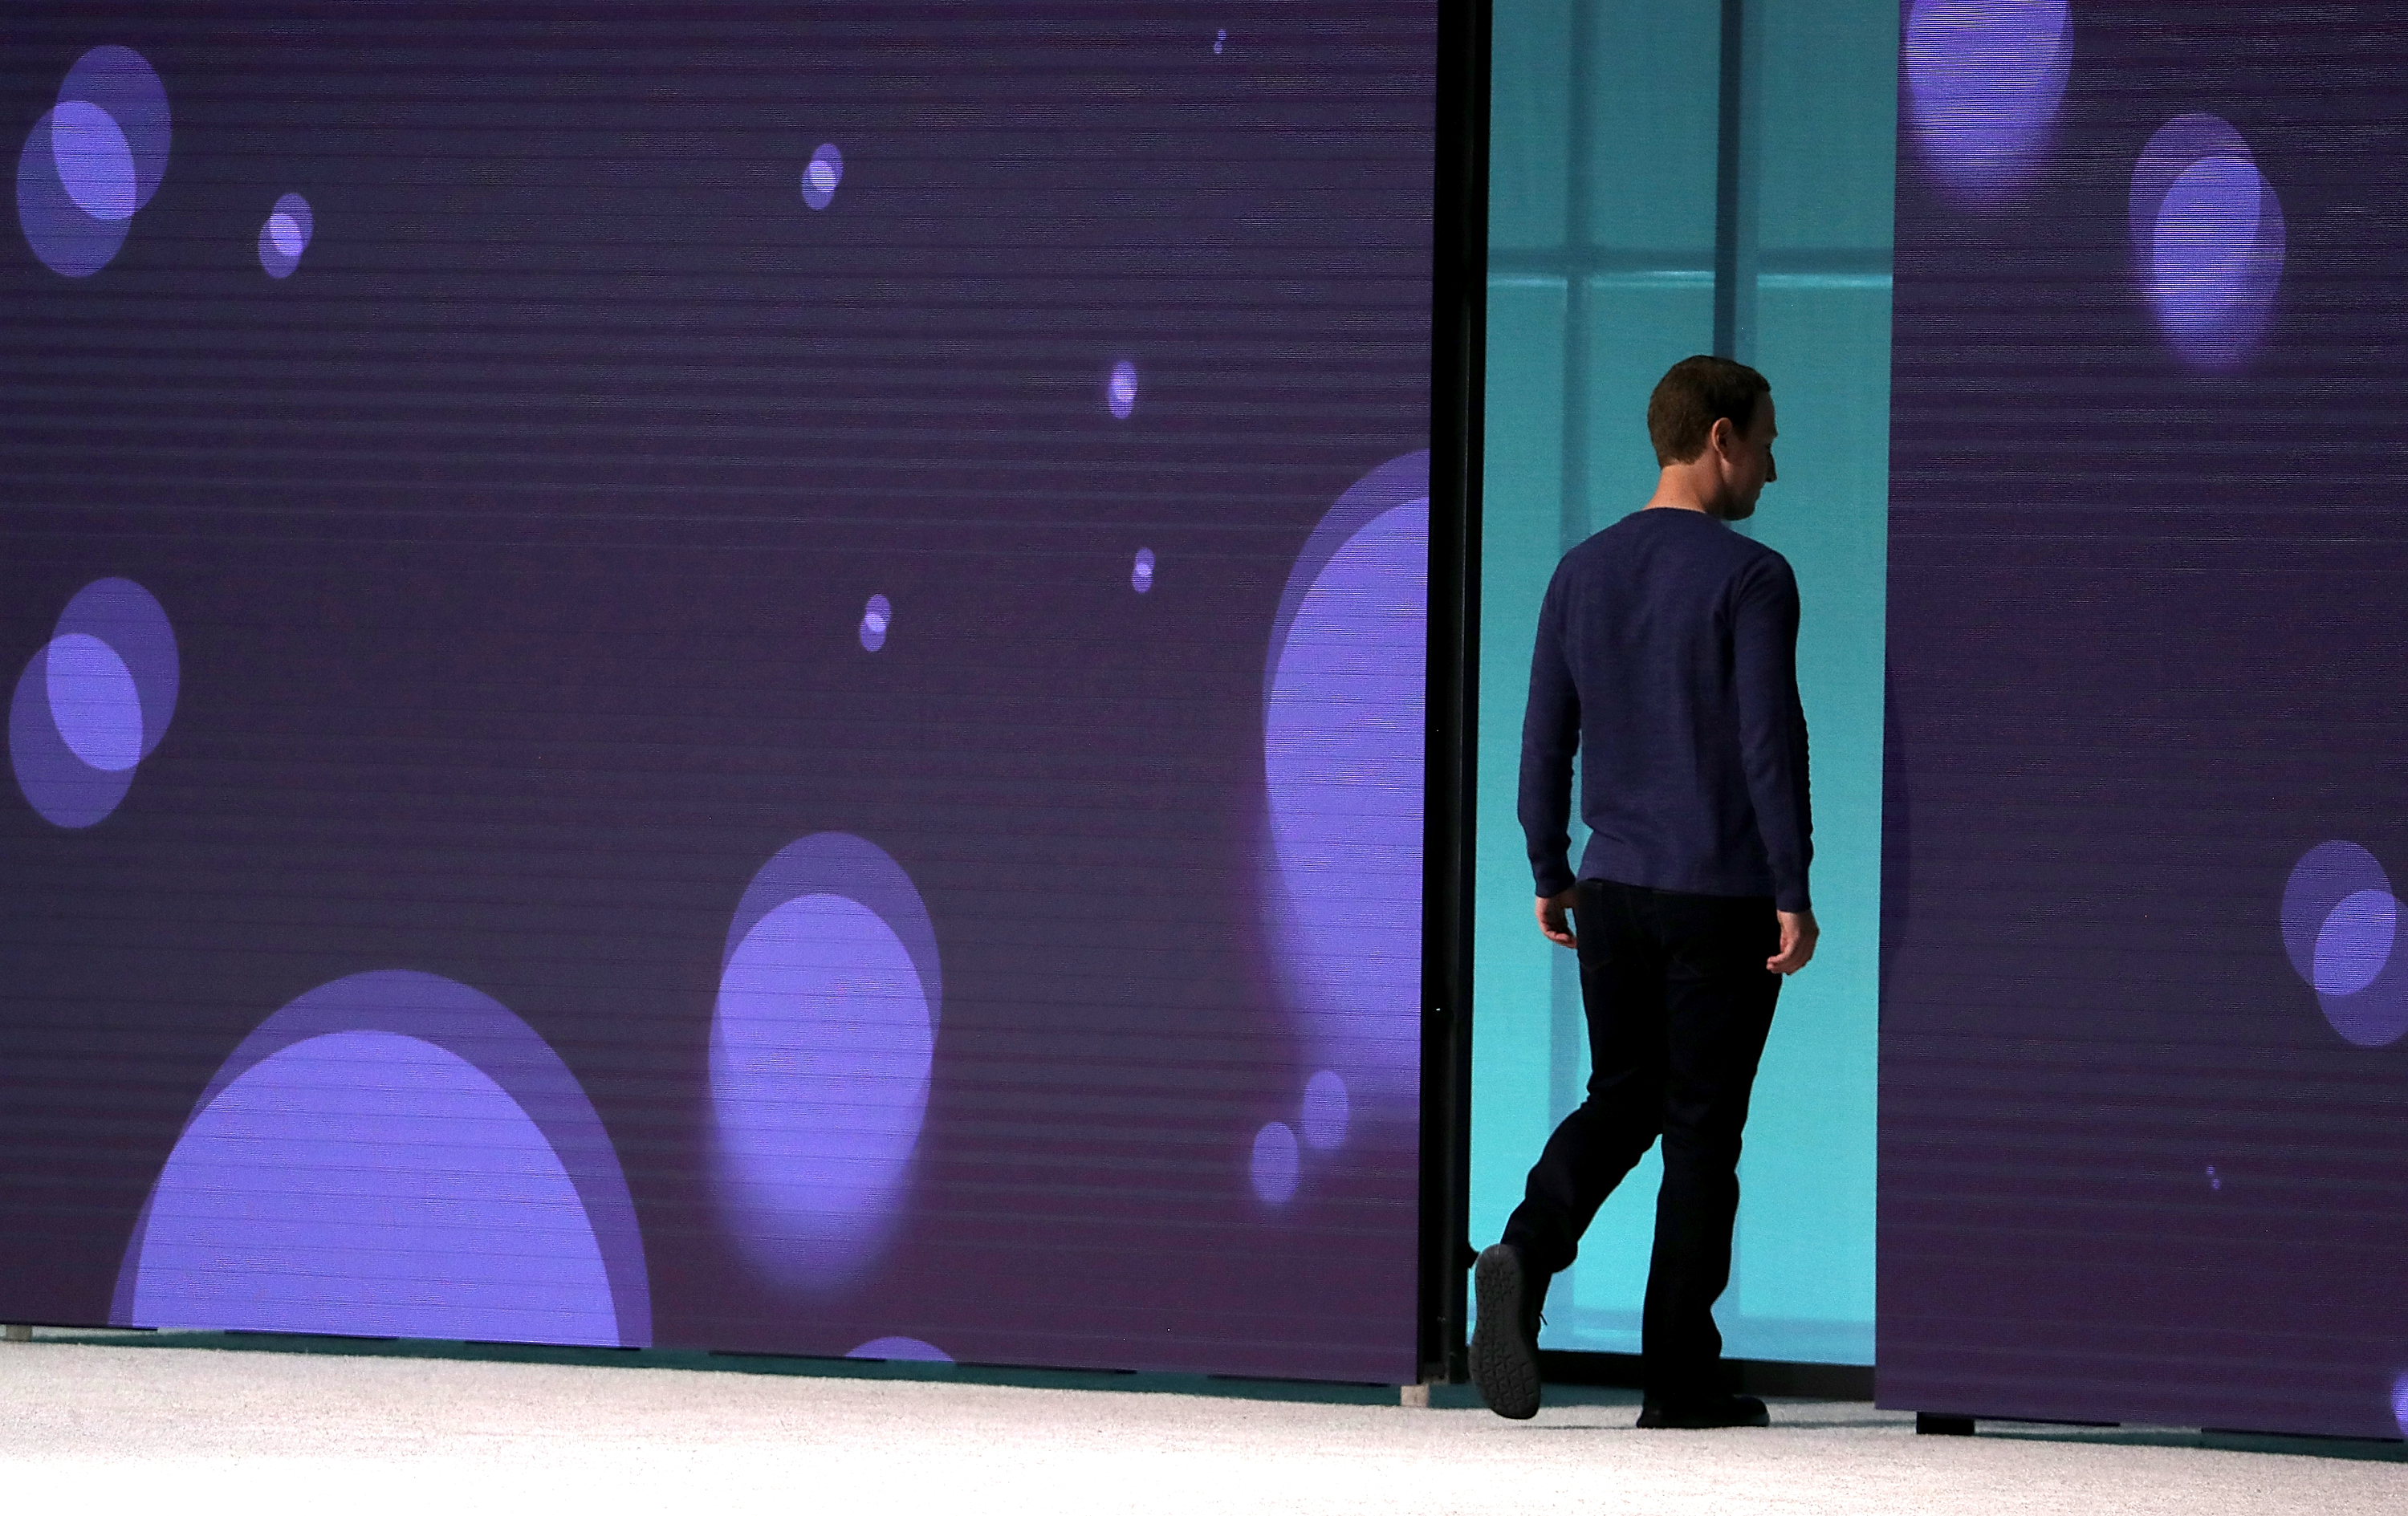 Facebook Mark Zuckerberg walks off stage after speaking during Facebook's F8 developers conference in California in May 2018.